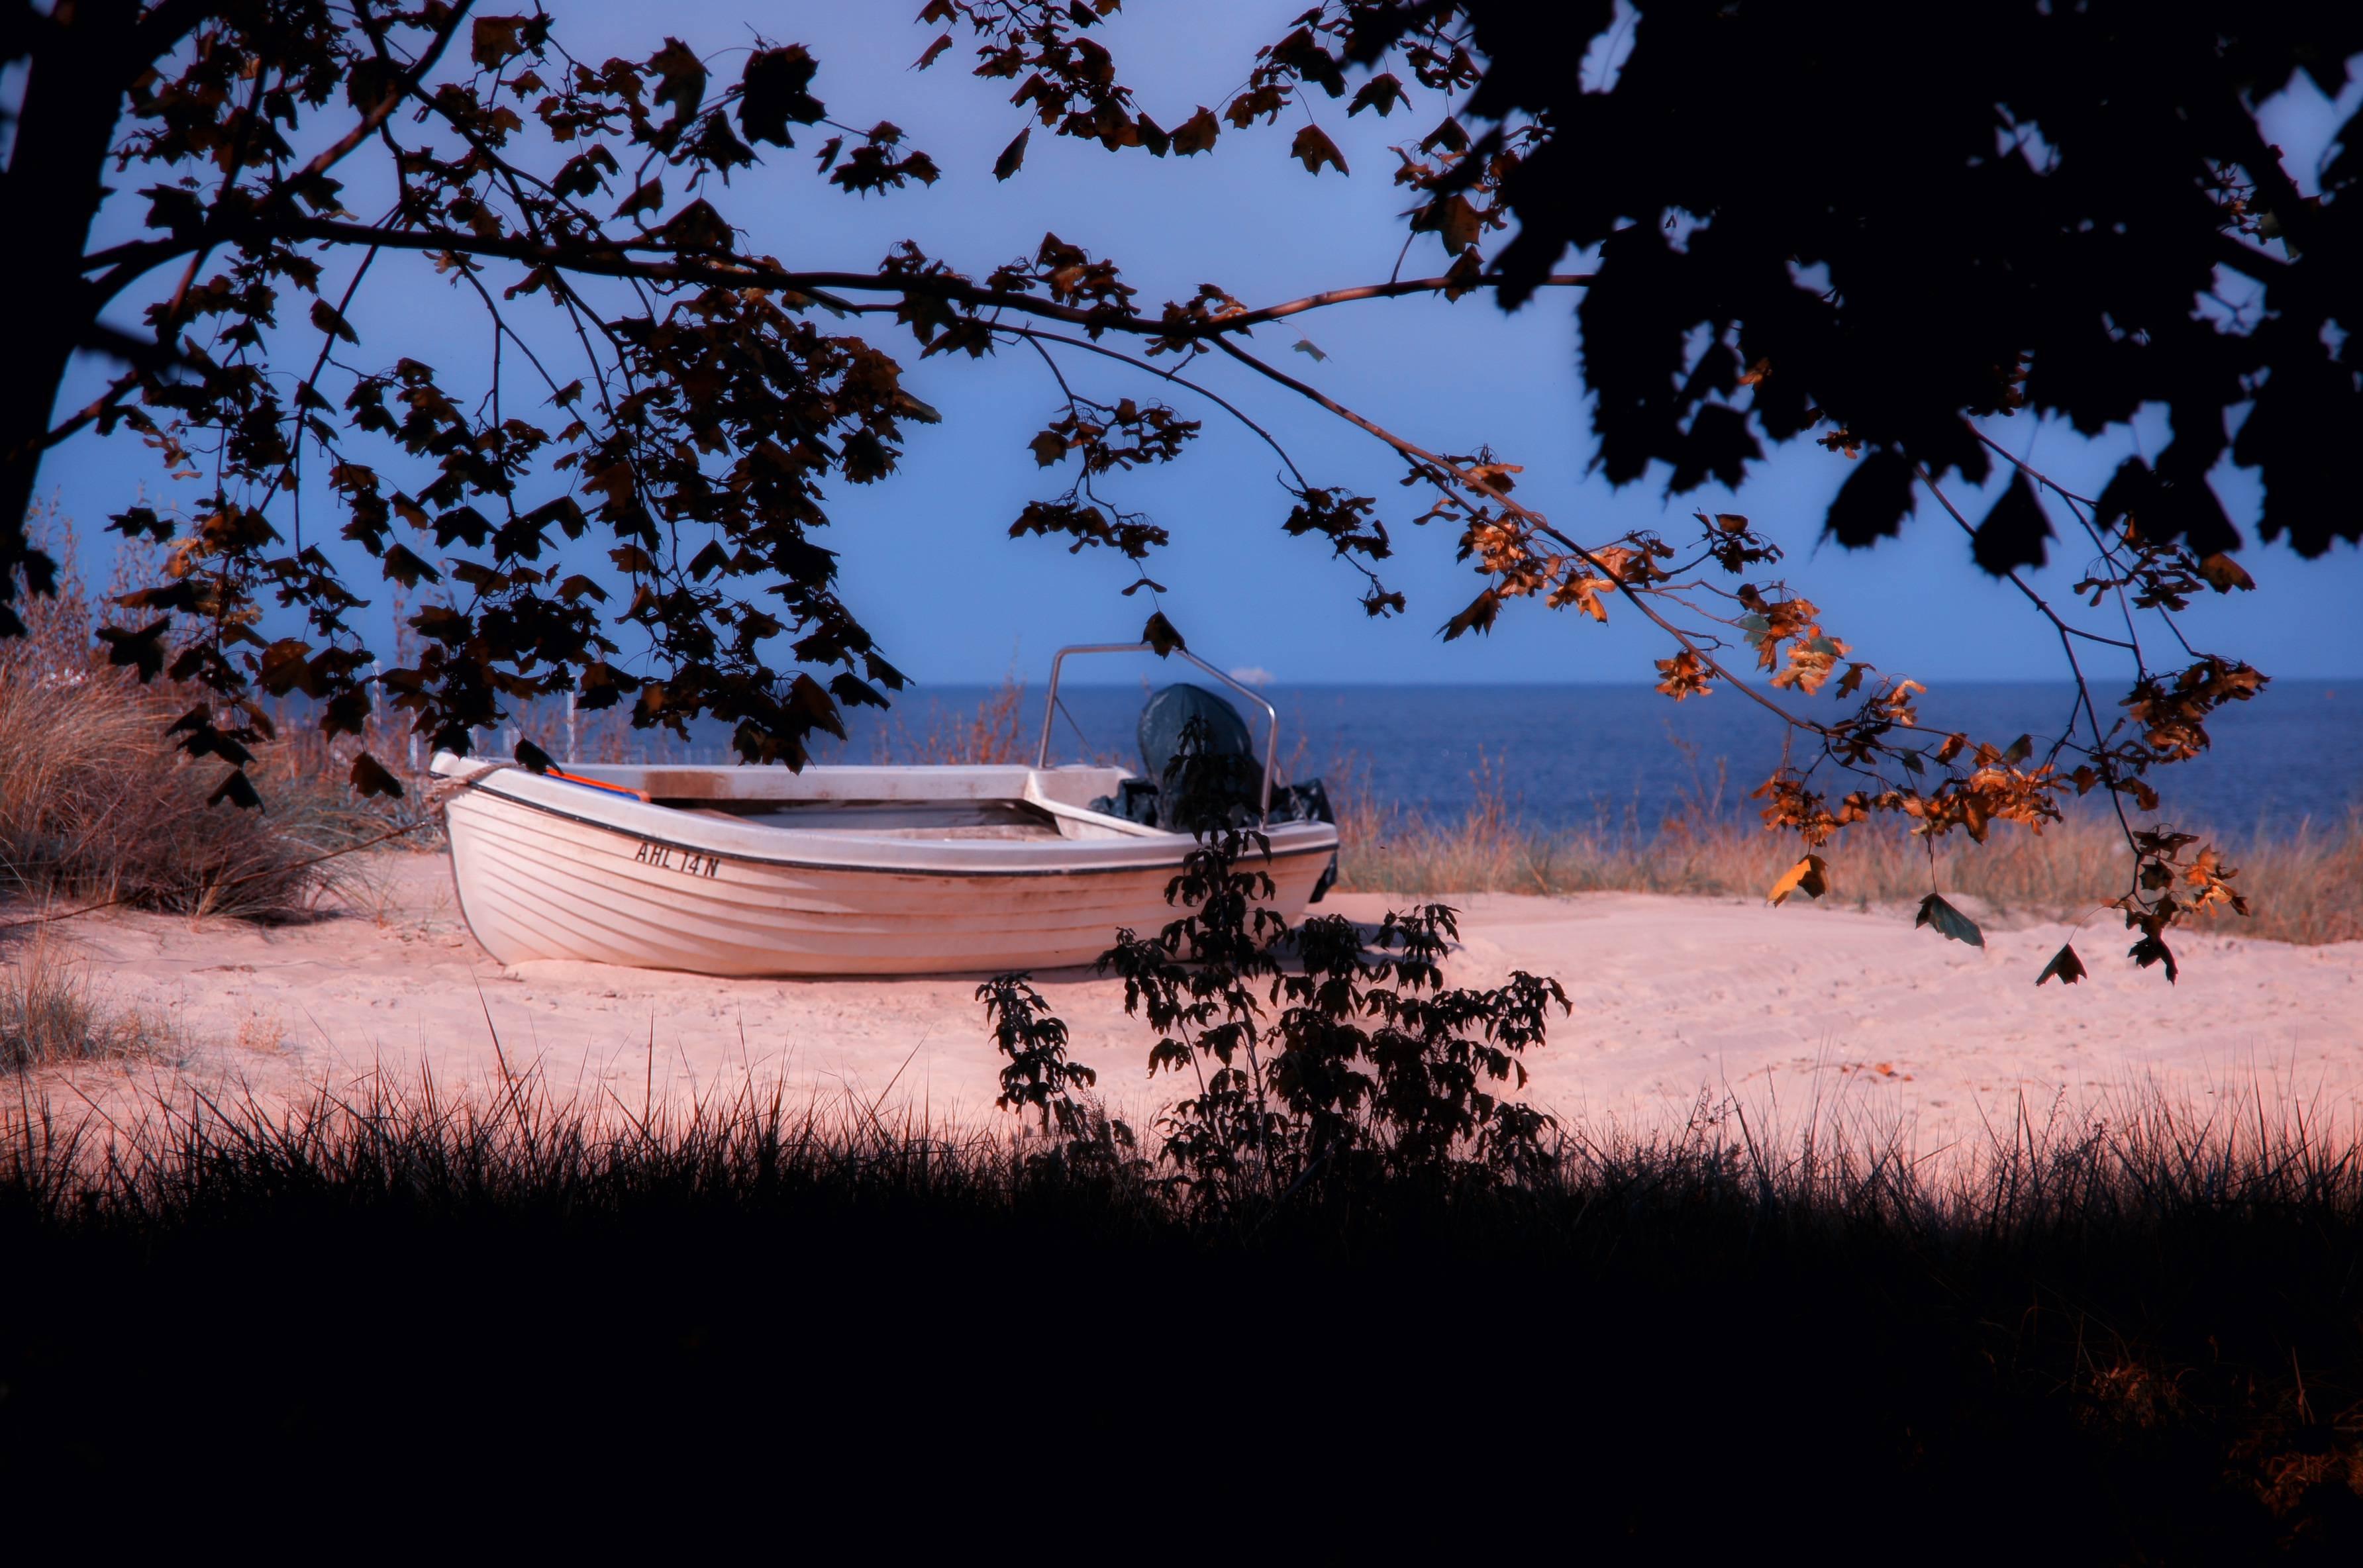 Baltic Sea, Romantic Beaches